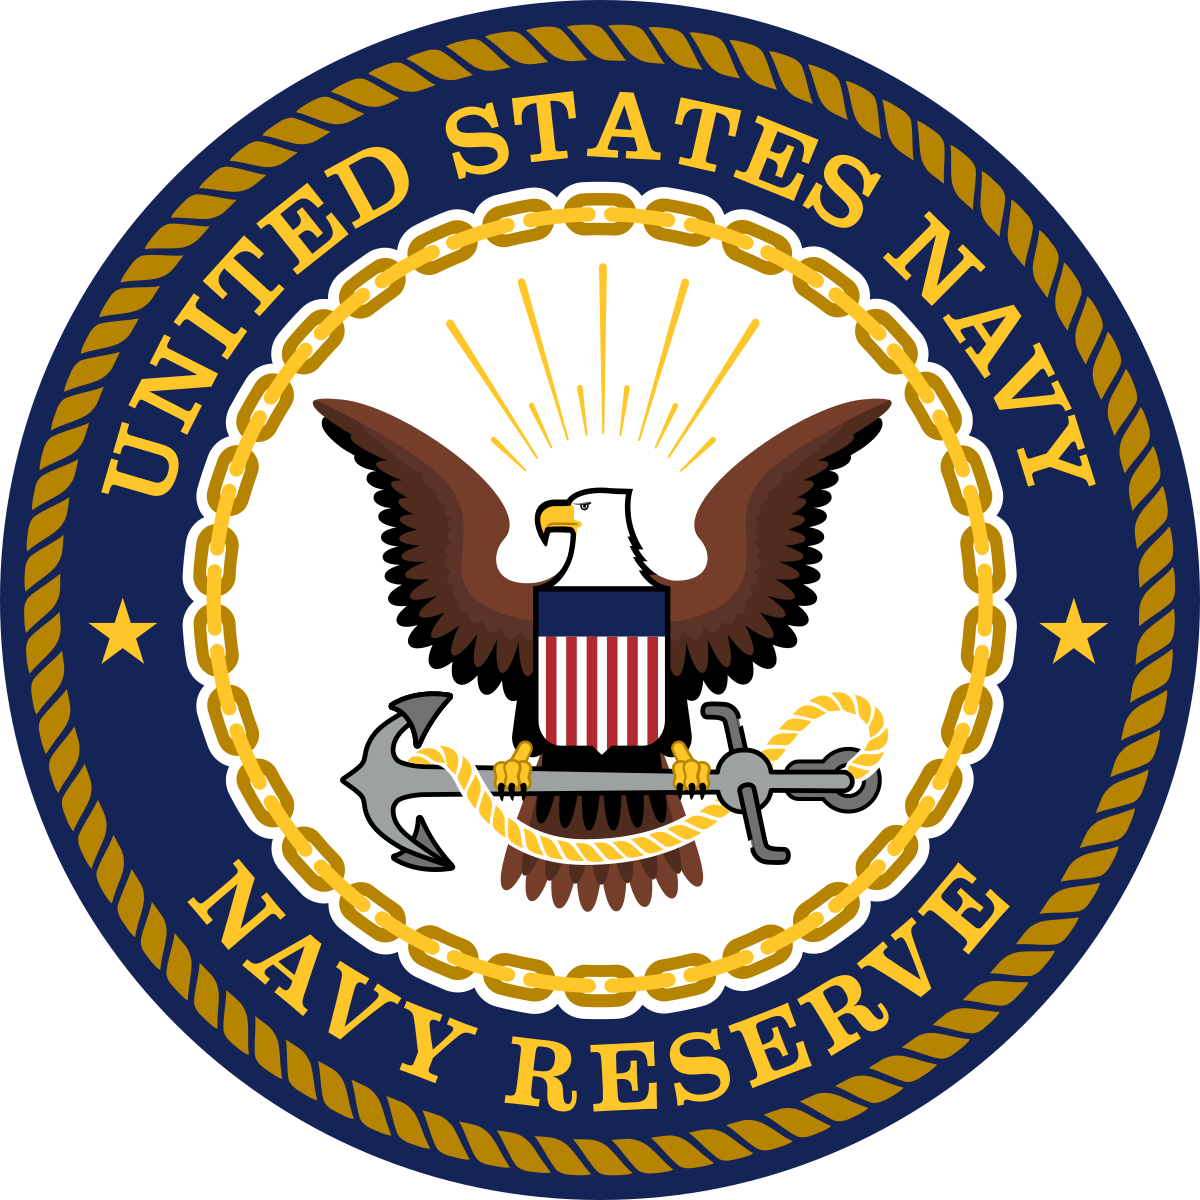 Wwii navy clipart cards free clip art Best HD Us Navy Clip Art Library » Free Vector Art, Images ... clip art